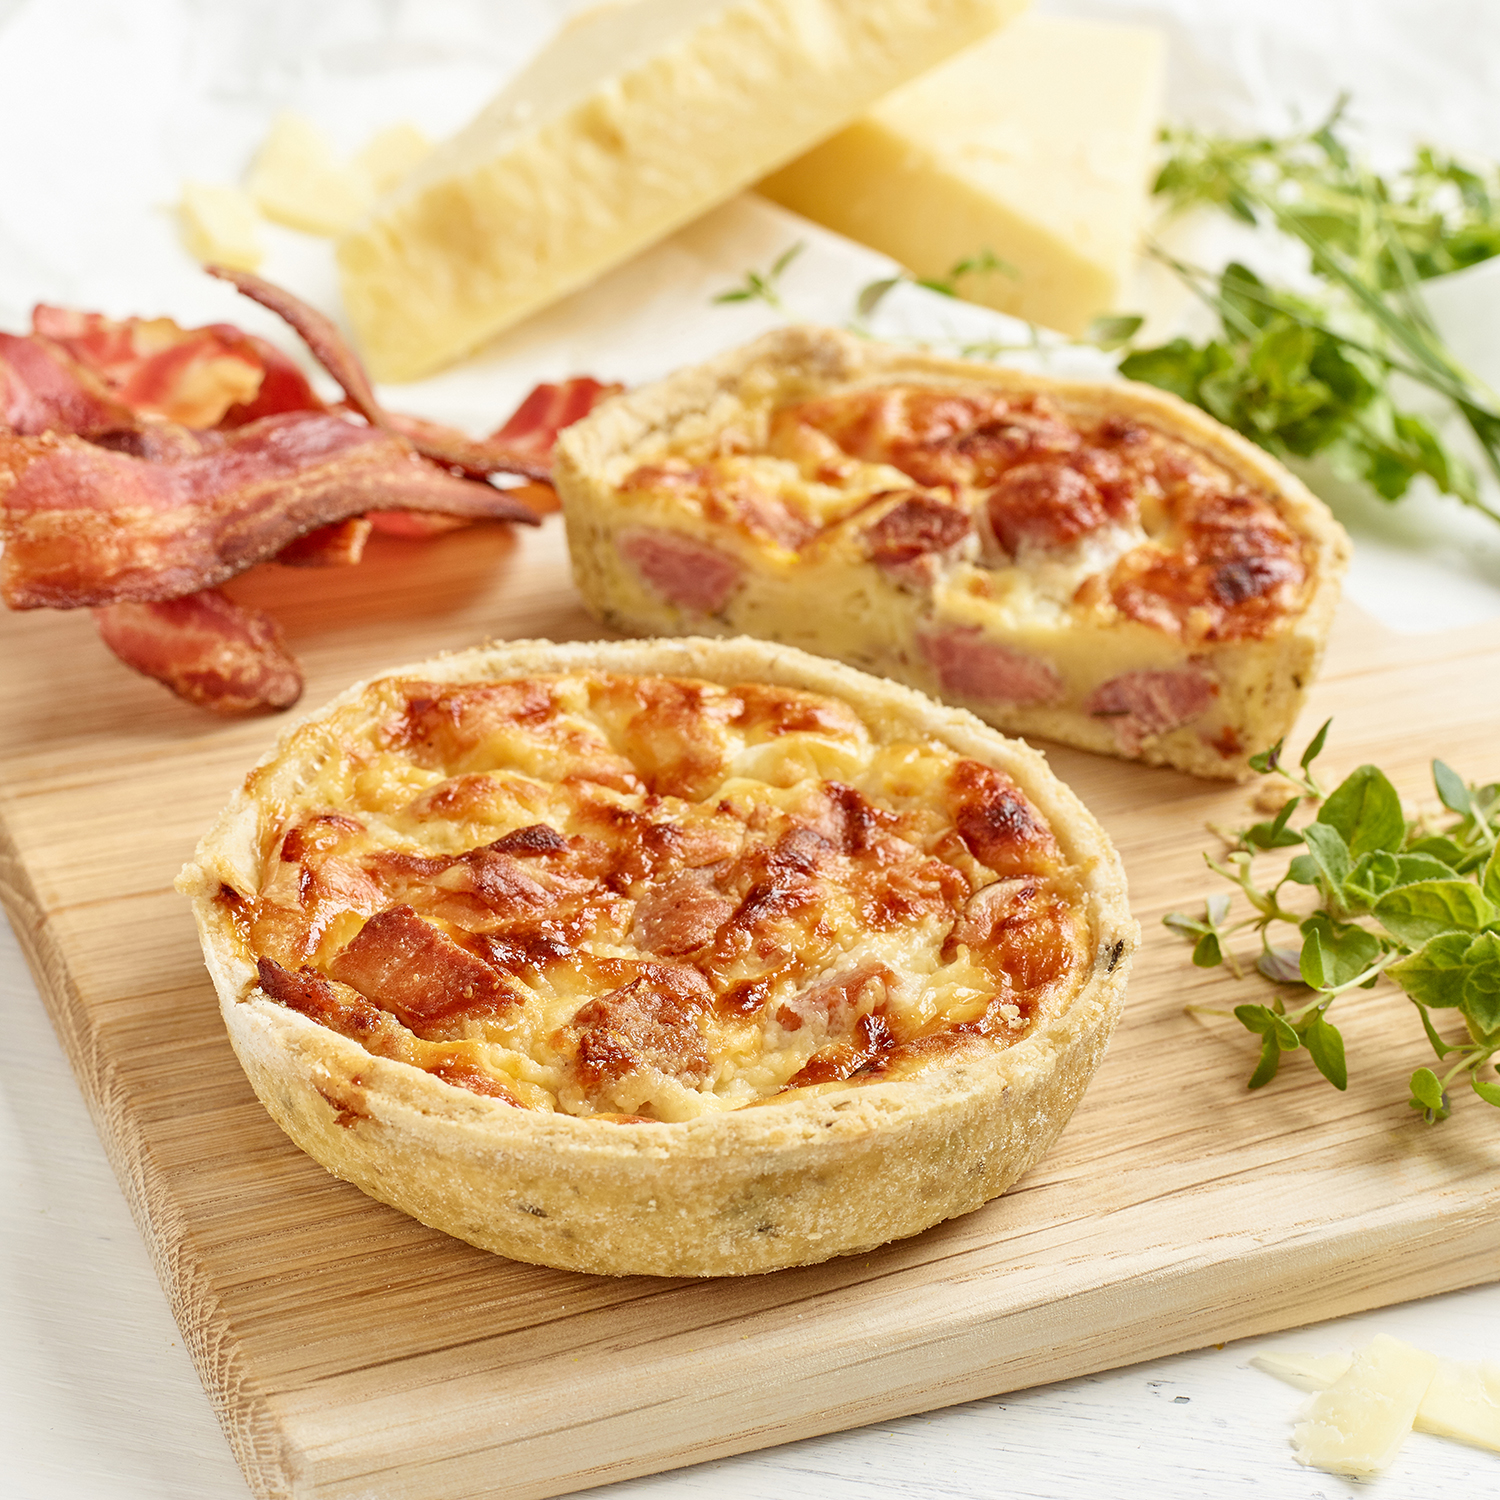 Maynard's Bacon & Mature Cheddar Quiche in a Herb Crust